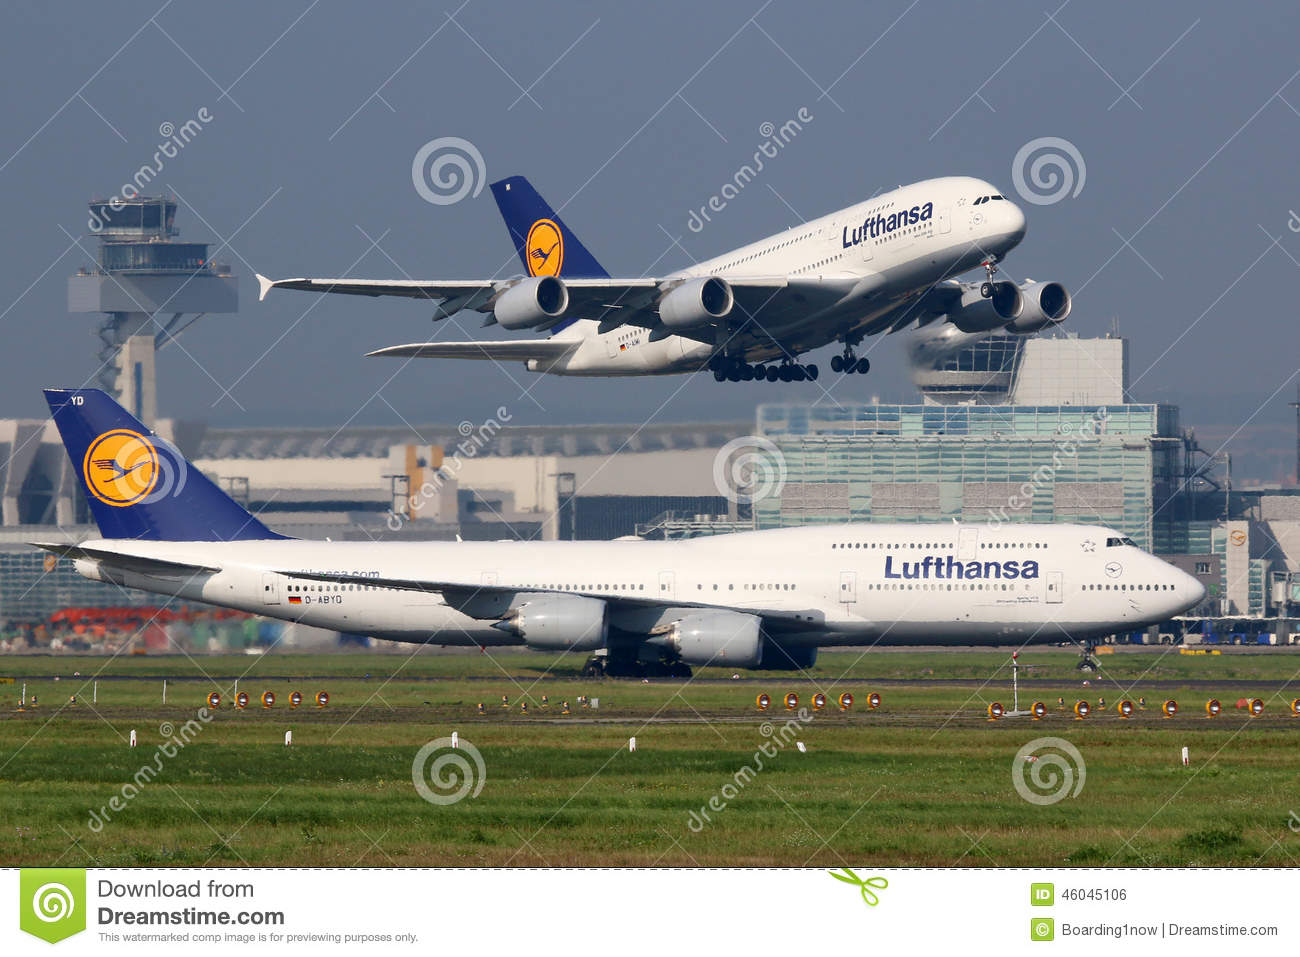 biggest 747 with Editorial Photo Lufthansa Airplanes Frankfurt Airport Germany September Airbus Boeing Aircraft Fra German Flag Carrier Image46045106 on Albany International Airport as well Editorial Photo Lufthansa Airplanes Frankfurt Airport Germany September Airbus Boeing Aircraft Fra German Flag Carrier Image46045106 also Hawaii moreover Watch also Boeing Tour.